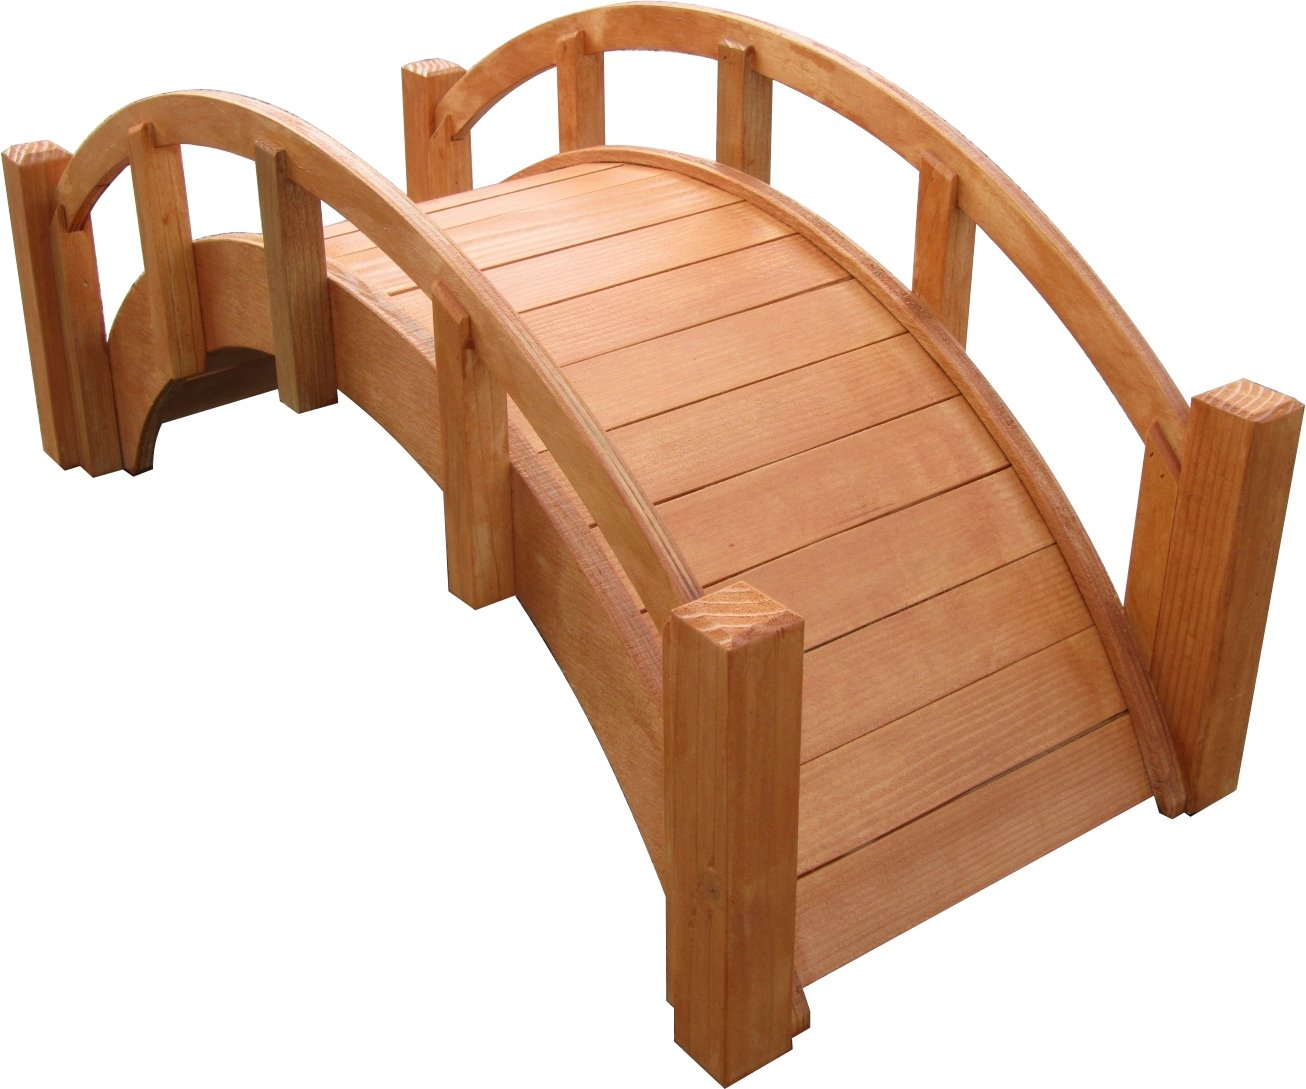 SamsGazebos Miniature Japanese Wood Garden Bridge, 25'' L, Watersealed, Assembled by SamsGazebosTM